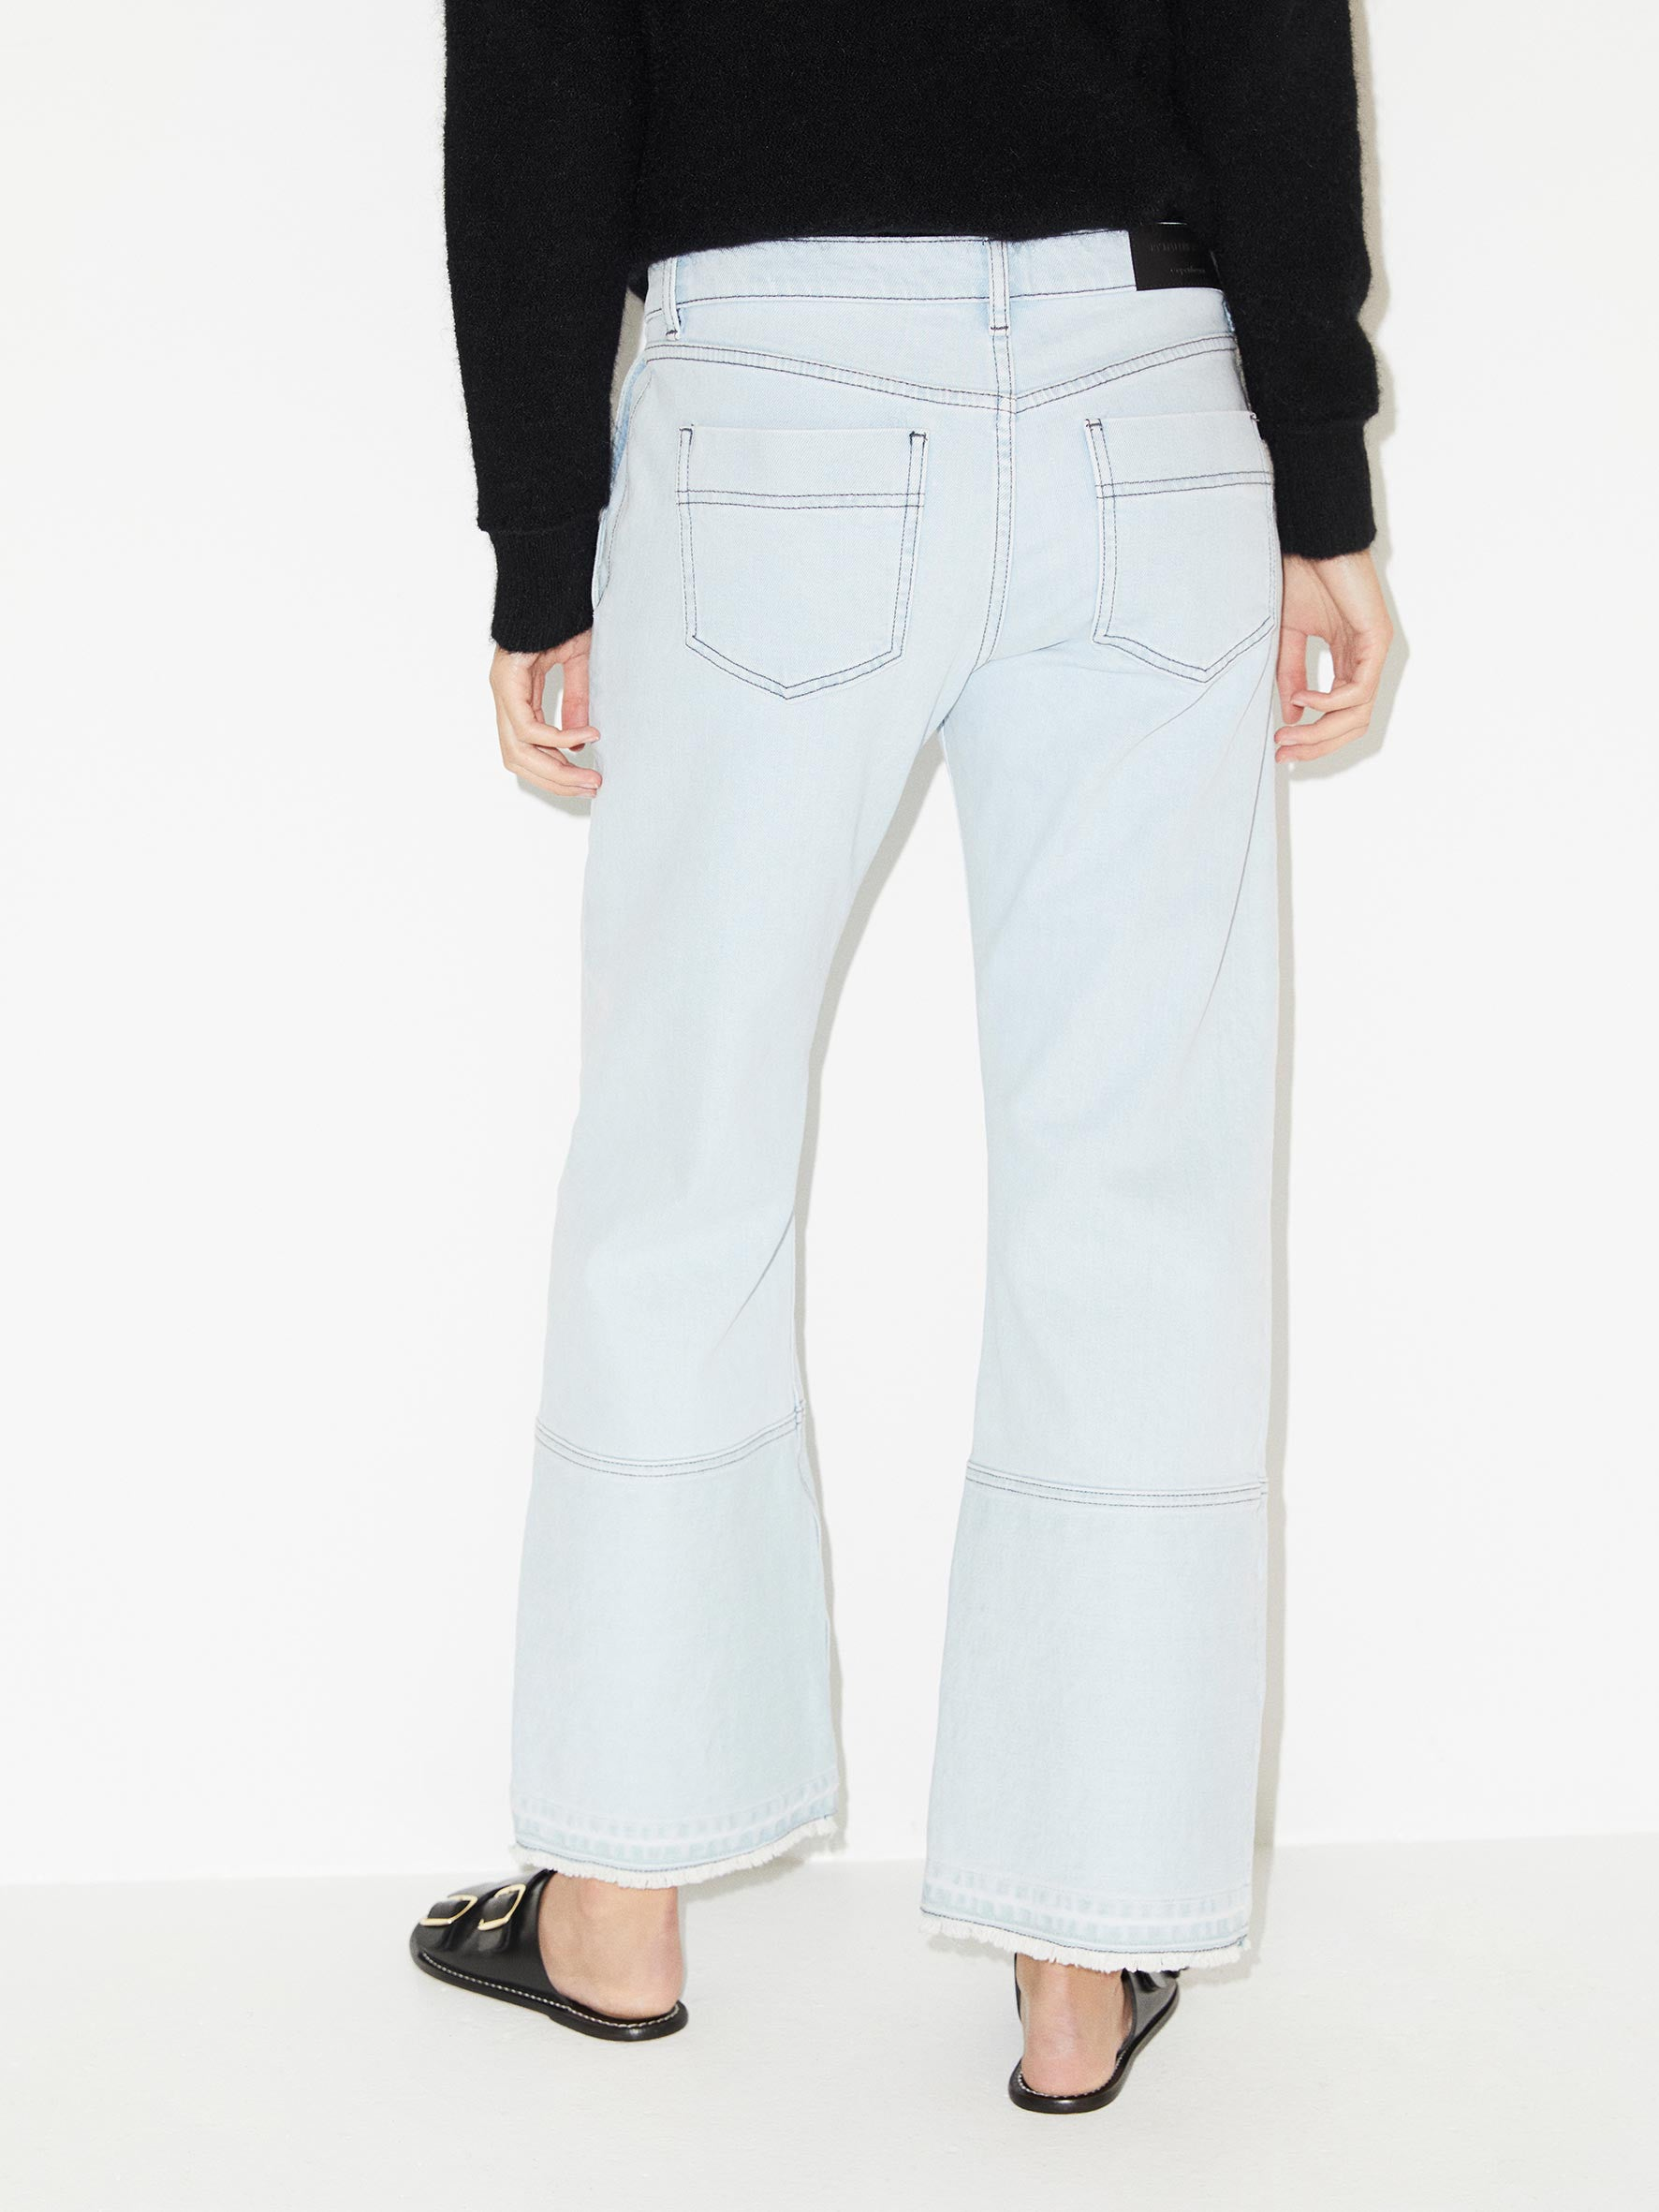 Helia Distressed Cropped Jeans